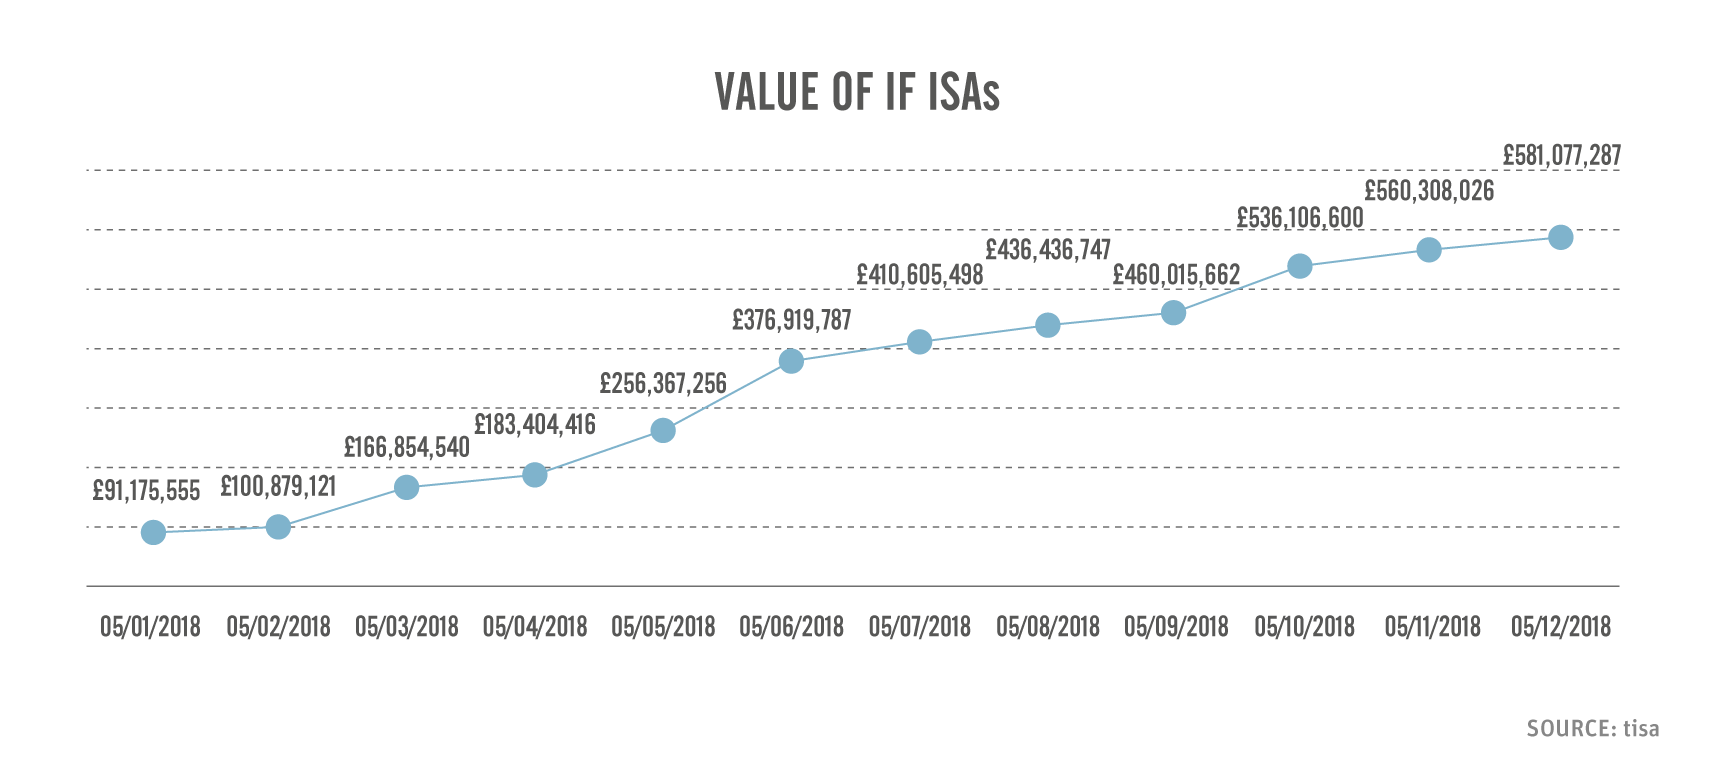 IFISA subscriptions on the rise